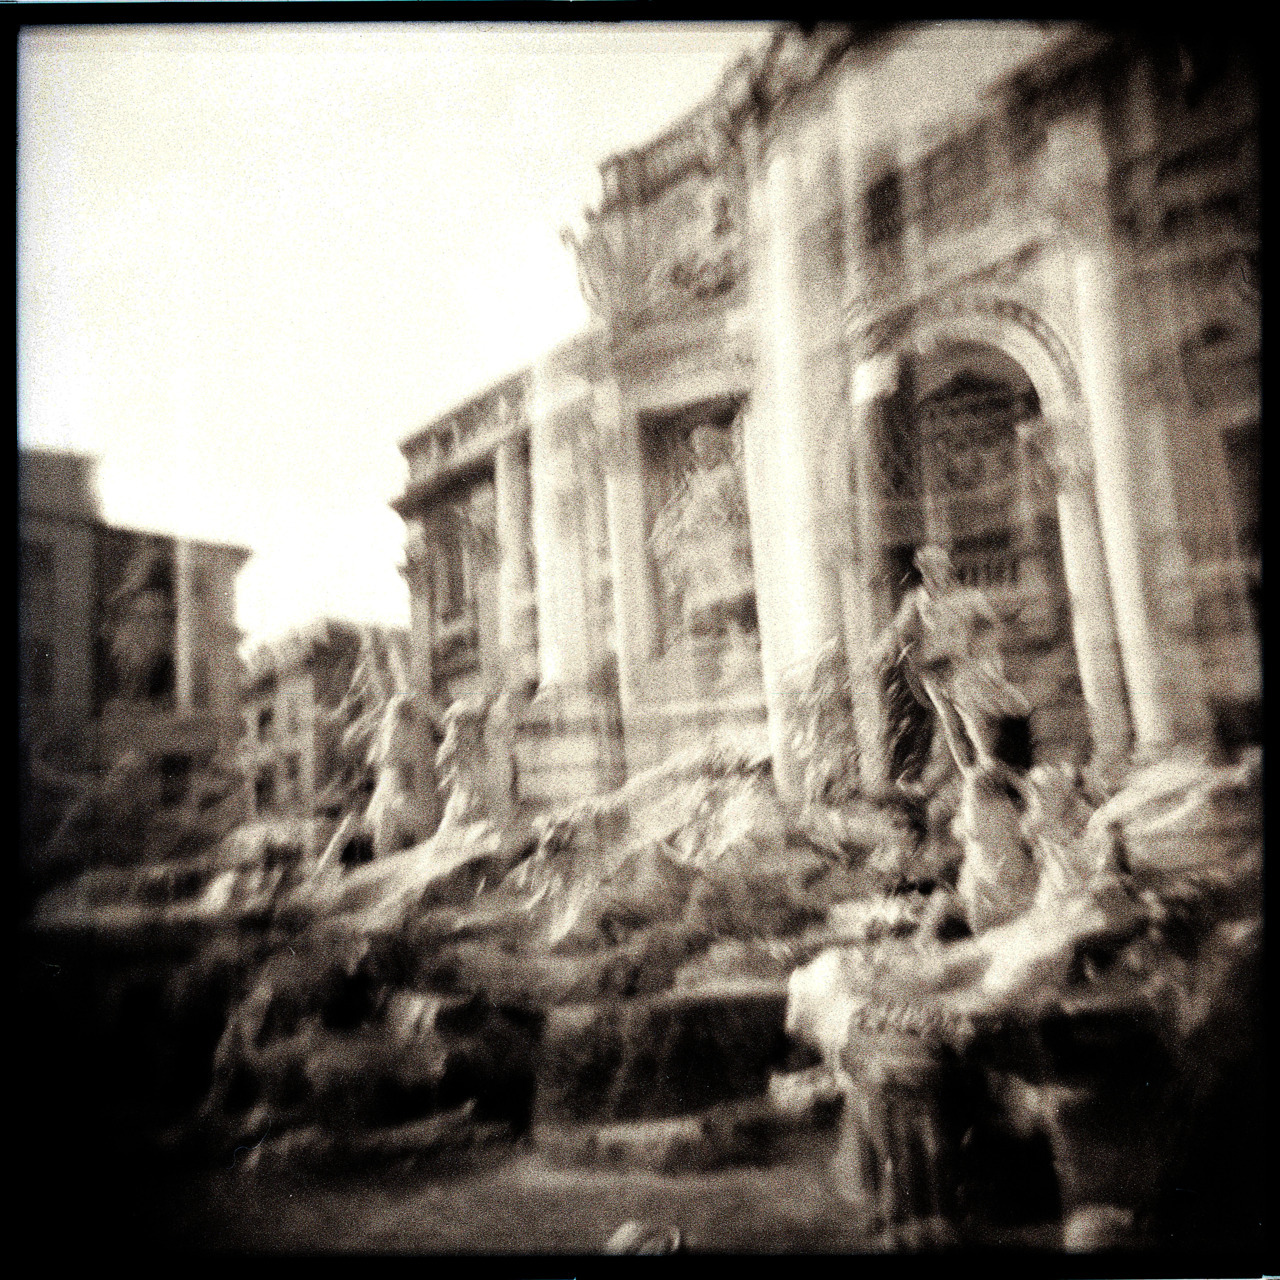 by Tiffany R. DeJesus Medium Format; 120mm, Holga